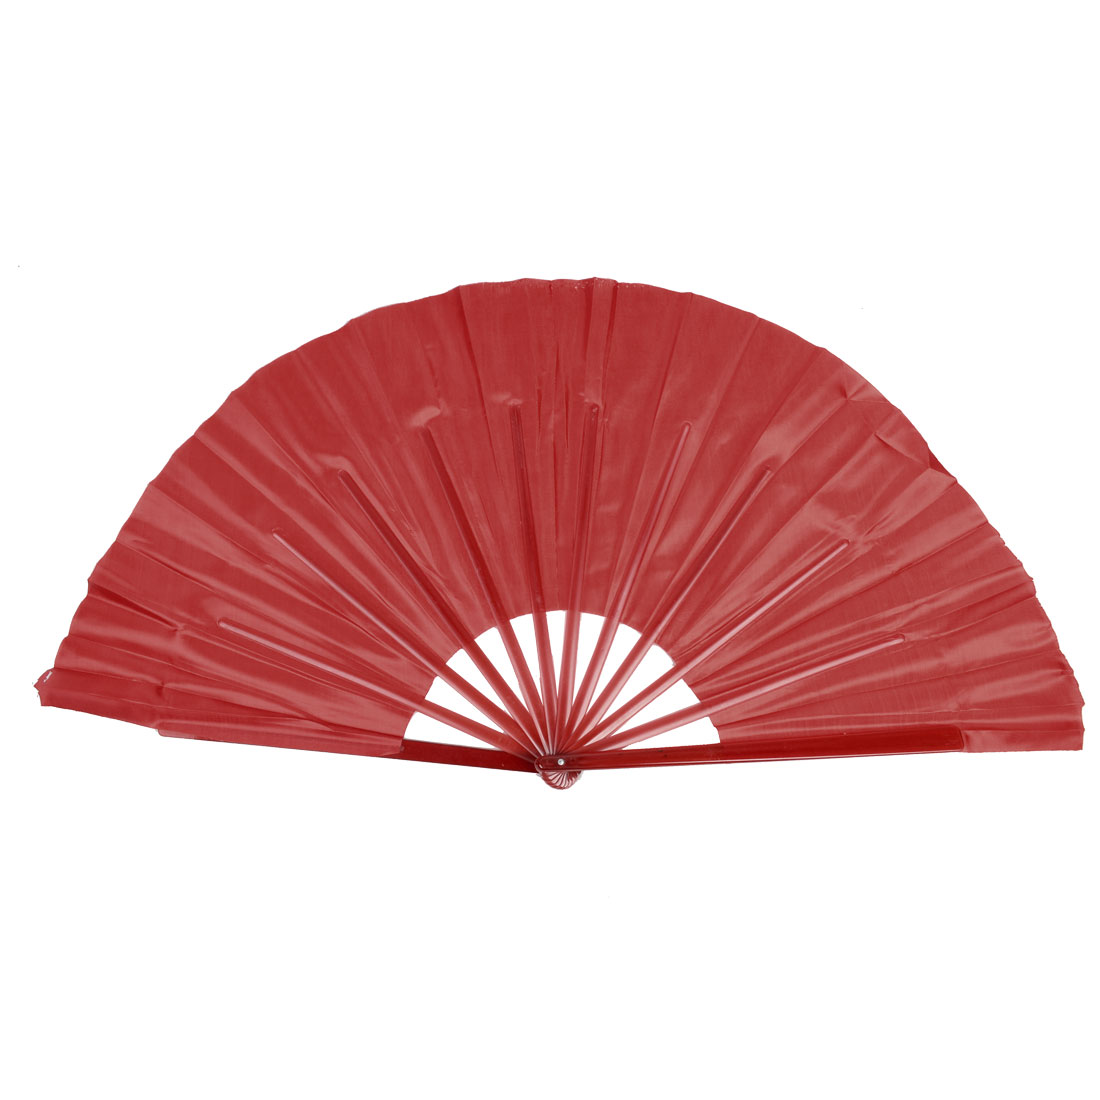 Folding Red Plastic Ribs Flutter Rim Chinese Folk Dancing Dance Hand Fan 2 Pcs